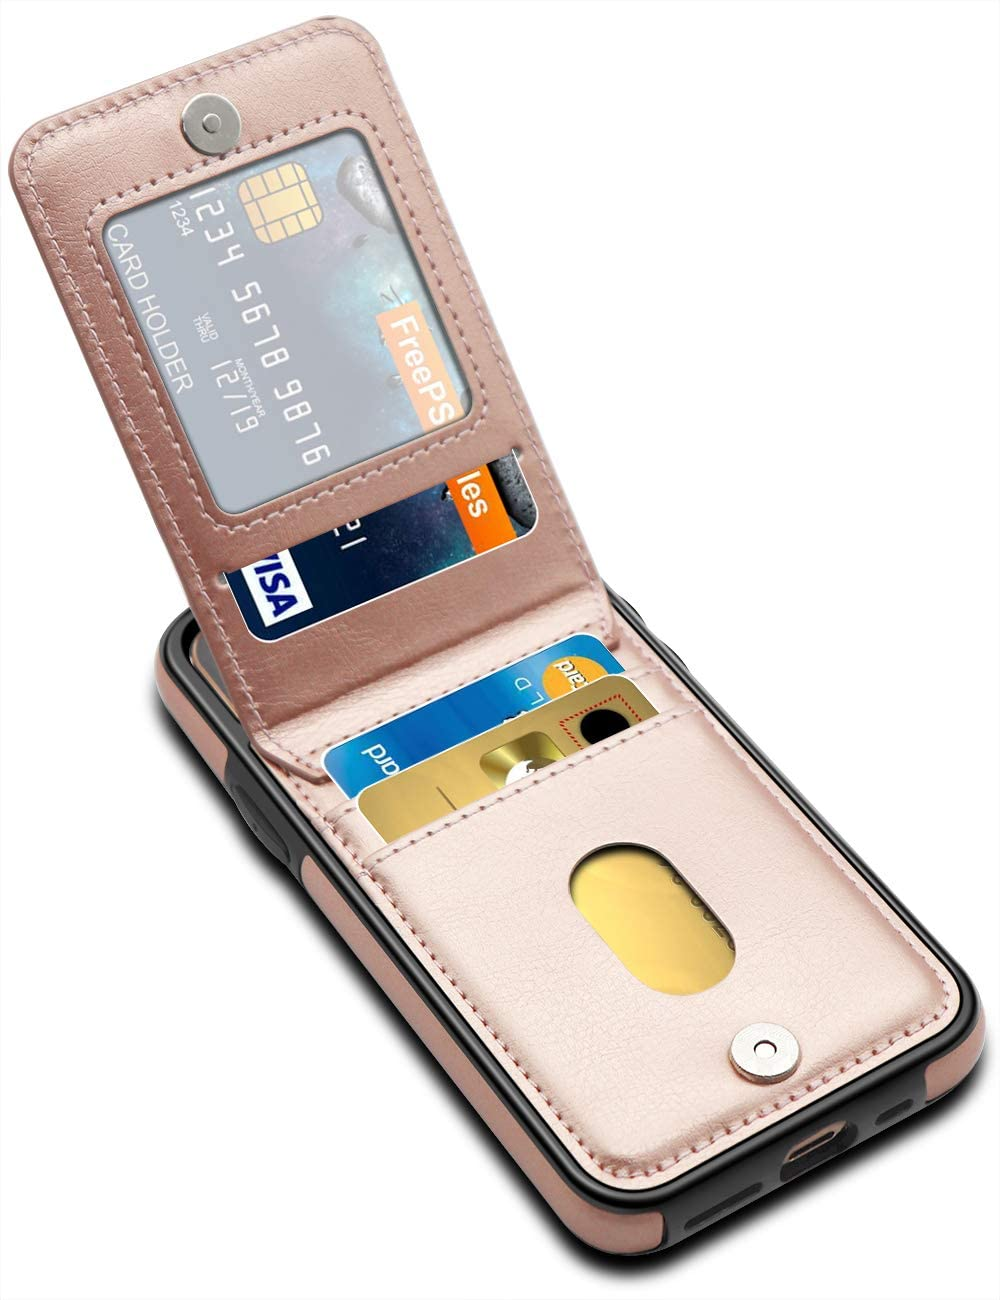 LakiBeibi iPhone 11 Pro Case, Dual Layer Lightweight Premium Leather iPhone 11 Pro Wallet Case with Card Holders for Women Magnetic Lock Flip Phone Case for iPhone 11 Pro 2019 5.8 Inches, Rose Gold